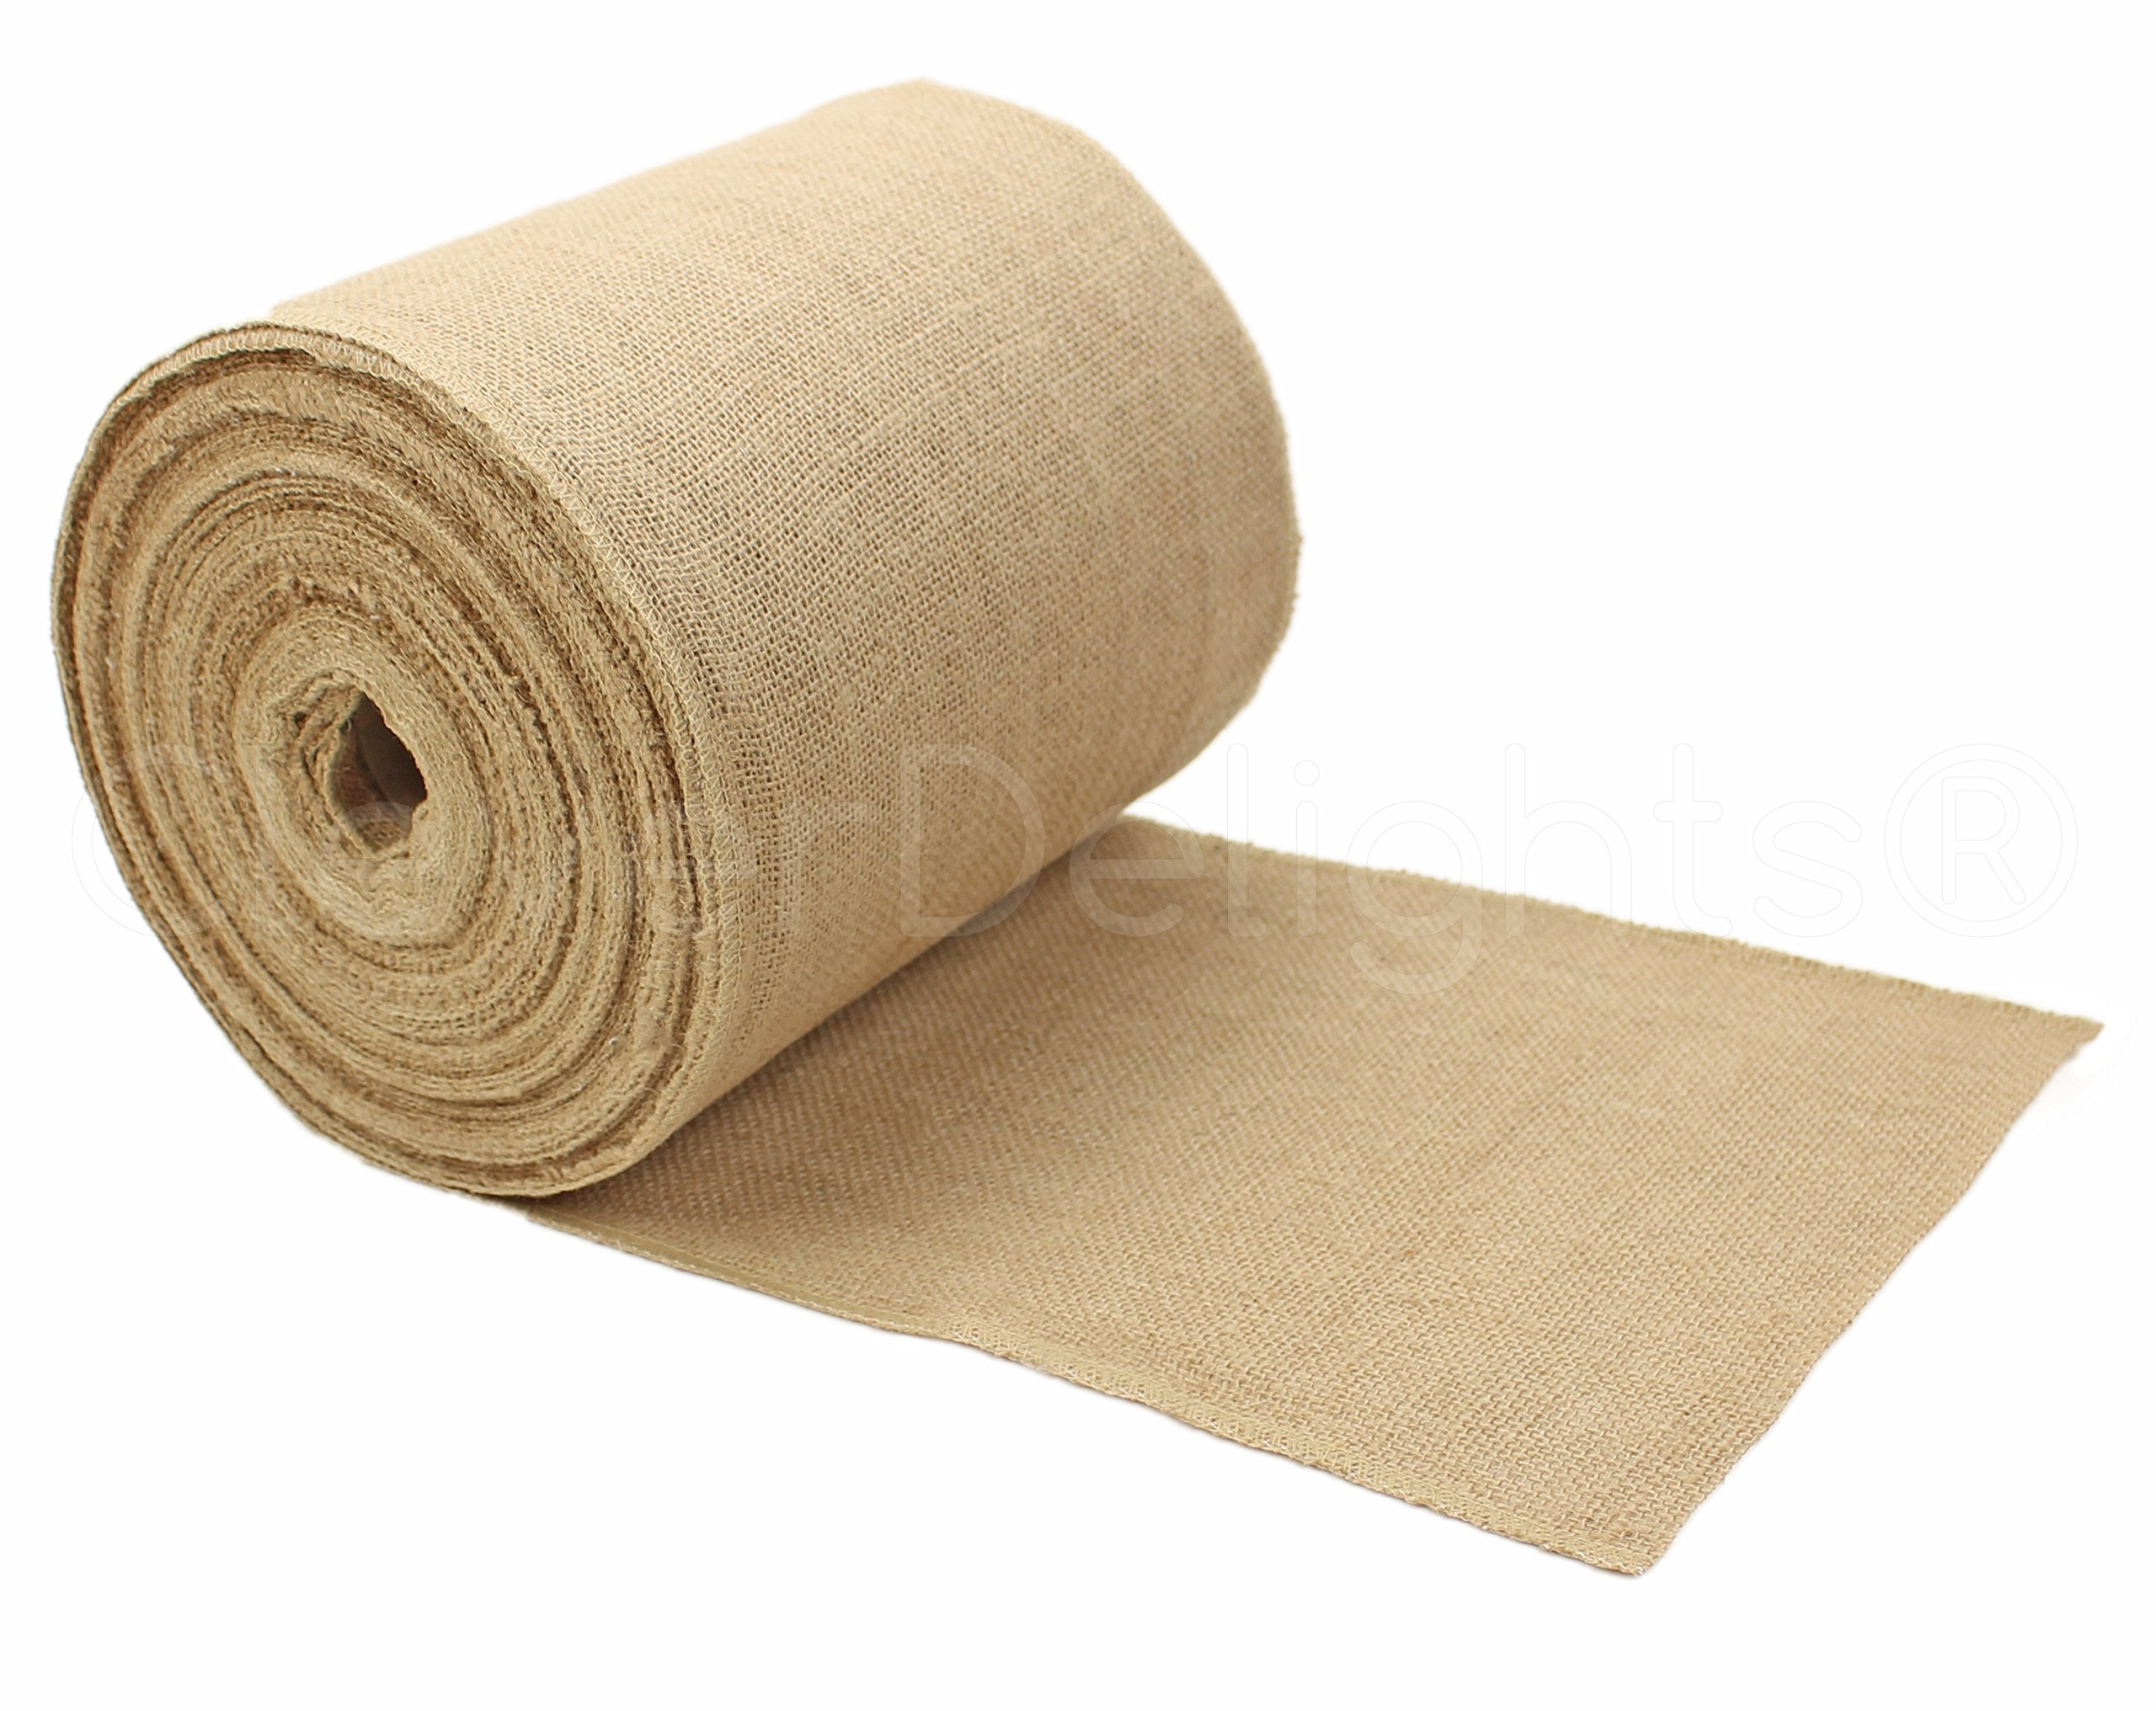 CleverDelights 9'' Premium Burlap Roll - 50 Yards - No-Fray Finished Edges - Natural Jute Burlap Fabric